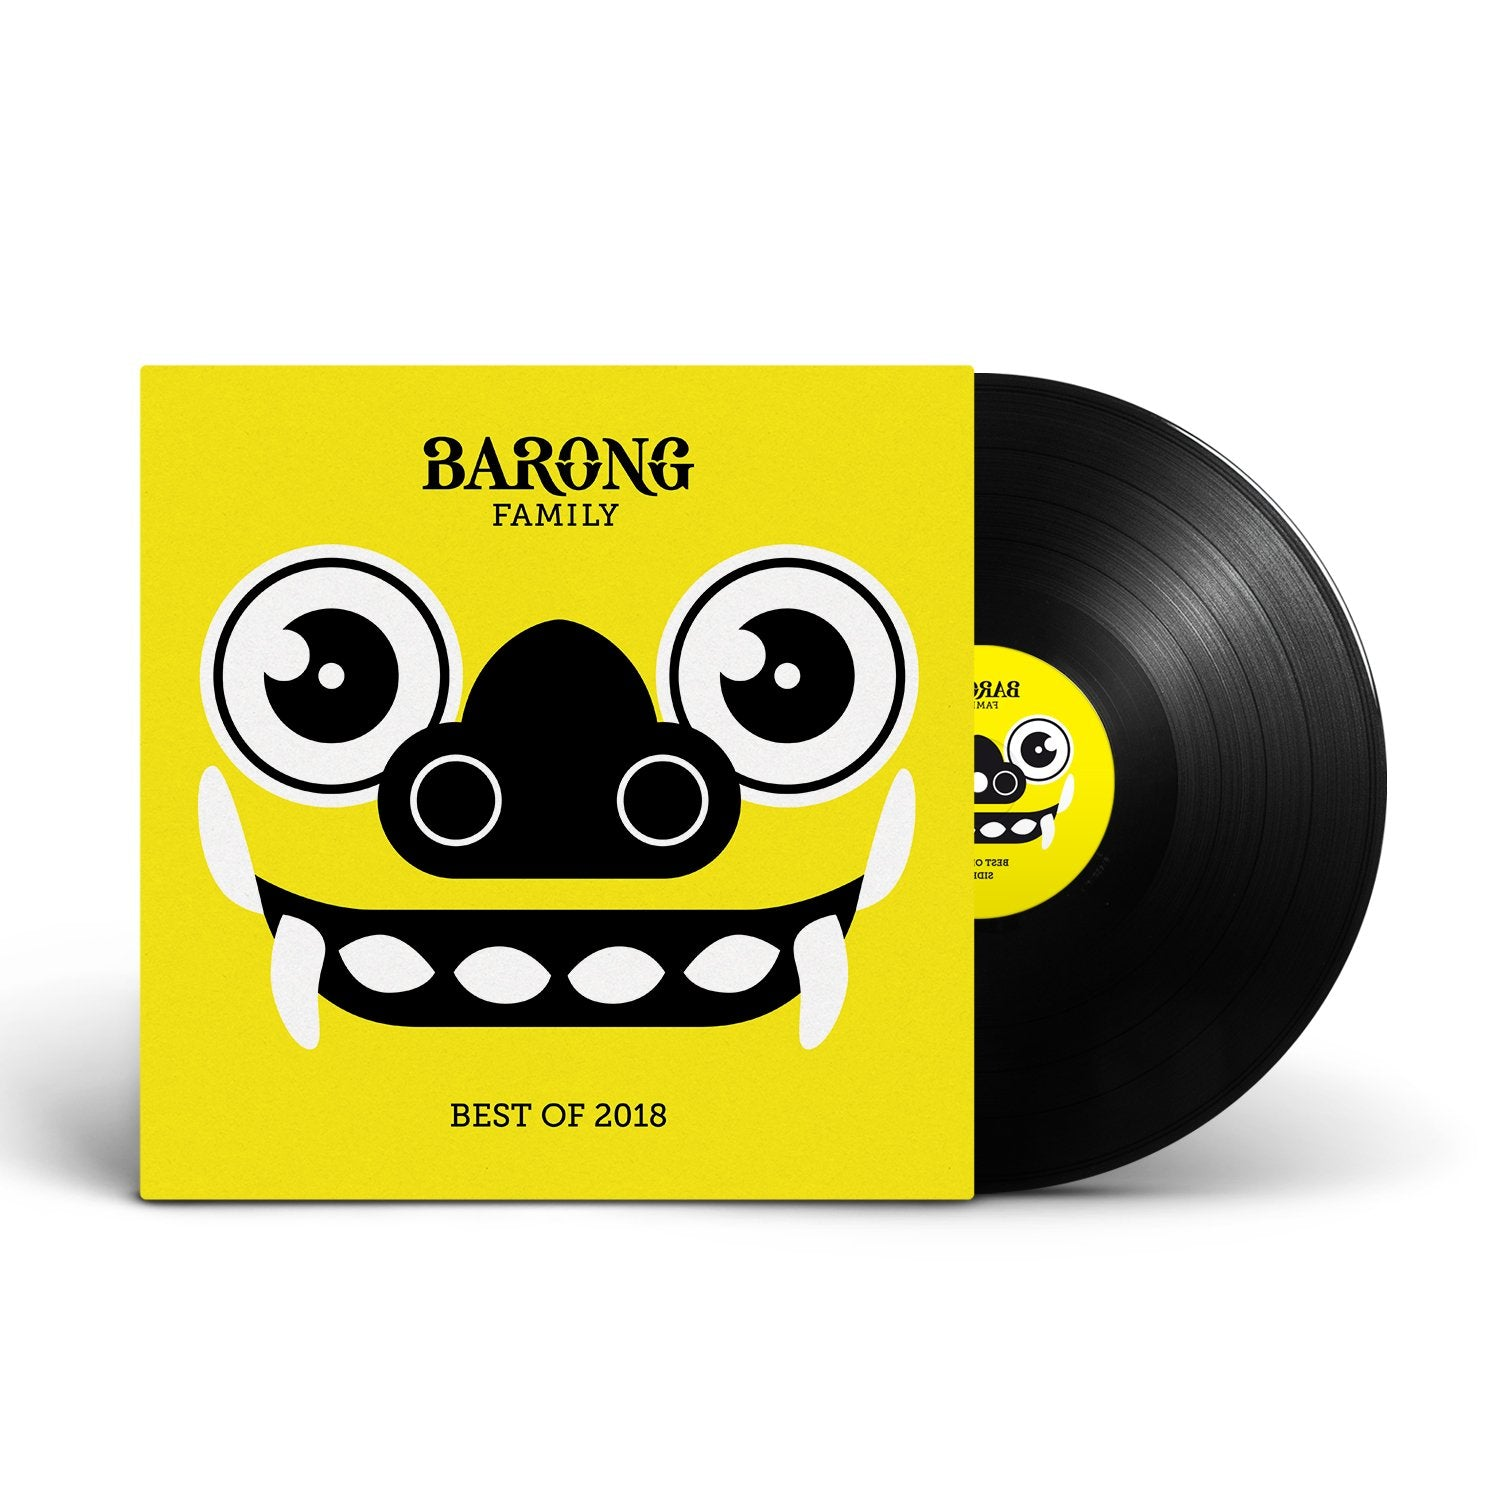 !SALE! BARONG FAMILY BEST OF 2018 (VINYL)